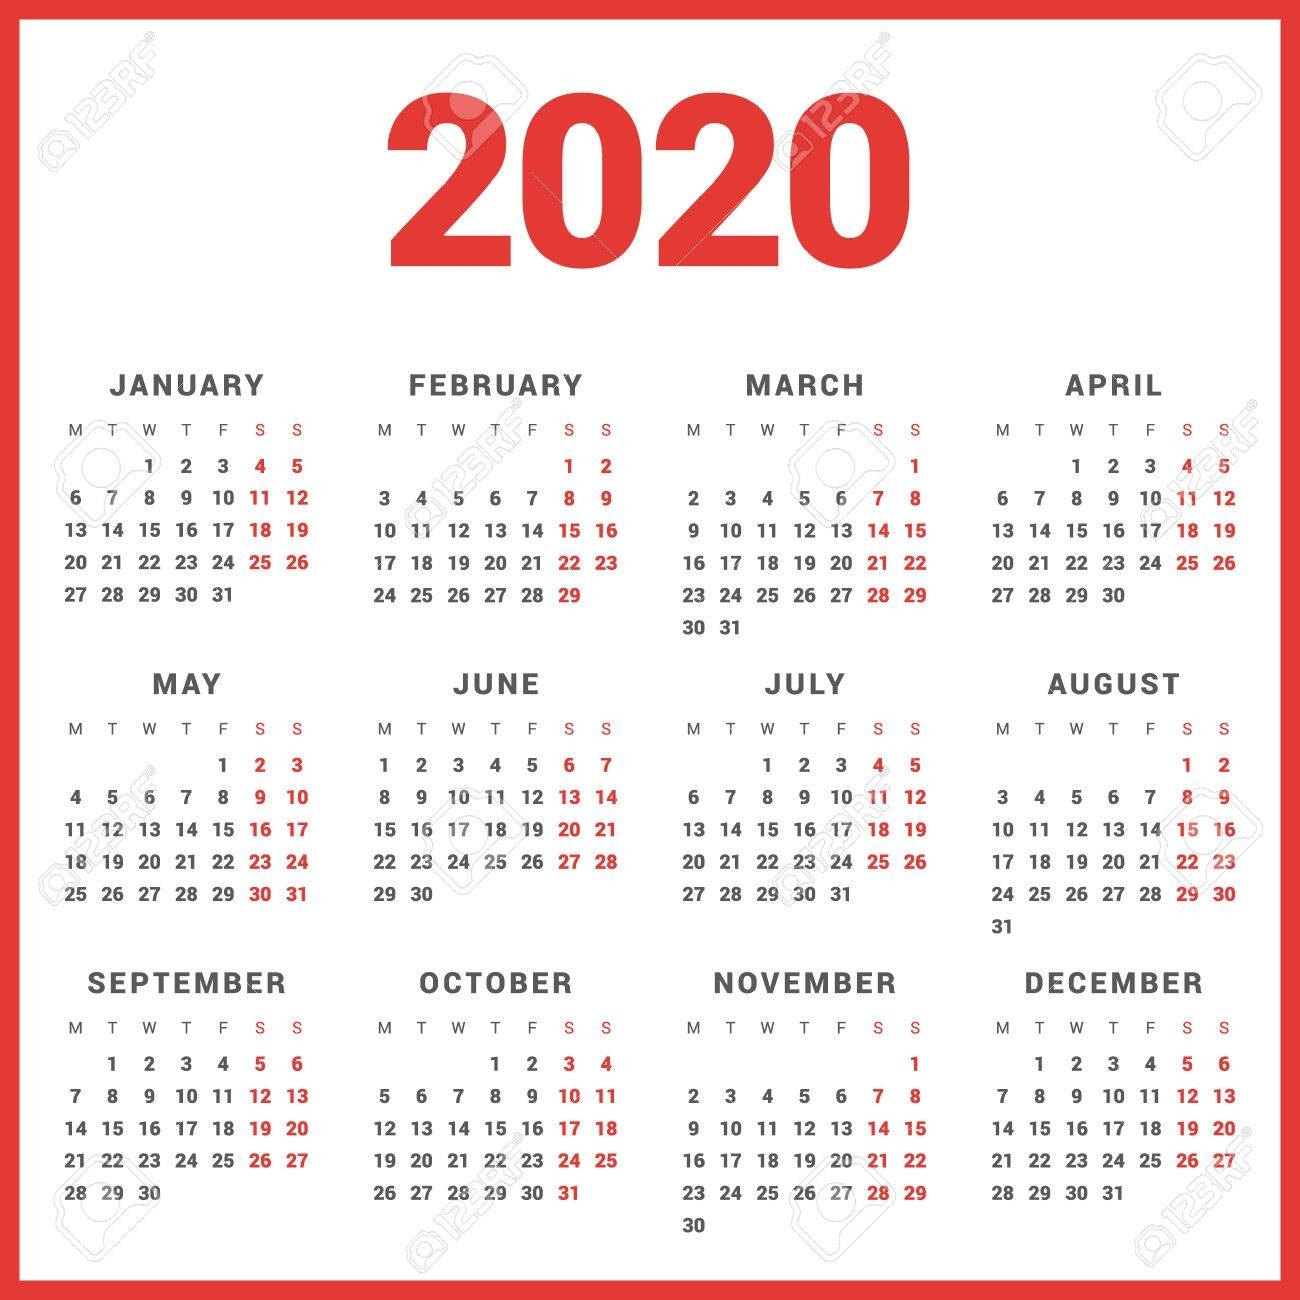 Monday Start Calendar 2020 - Colona.rsd7 intended for 2020 Calendar Starting On The Monday